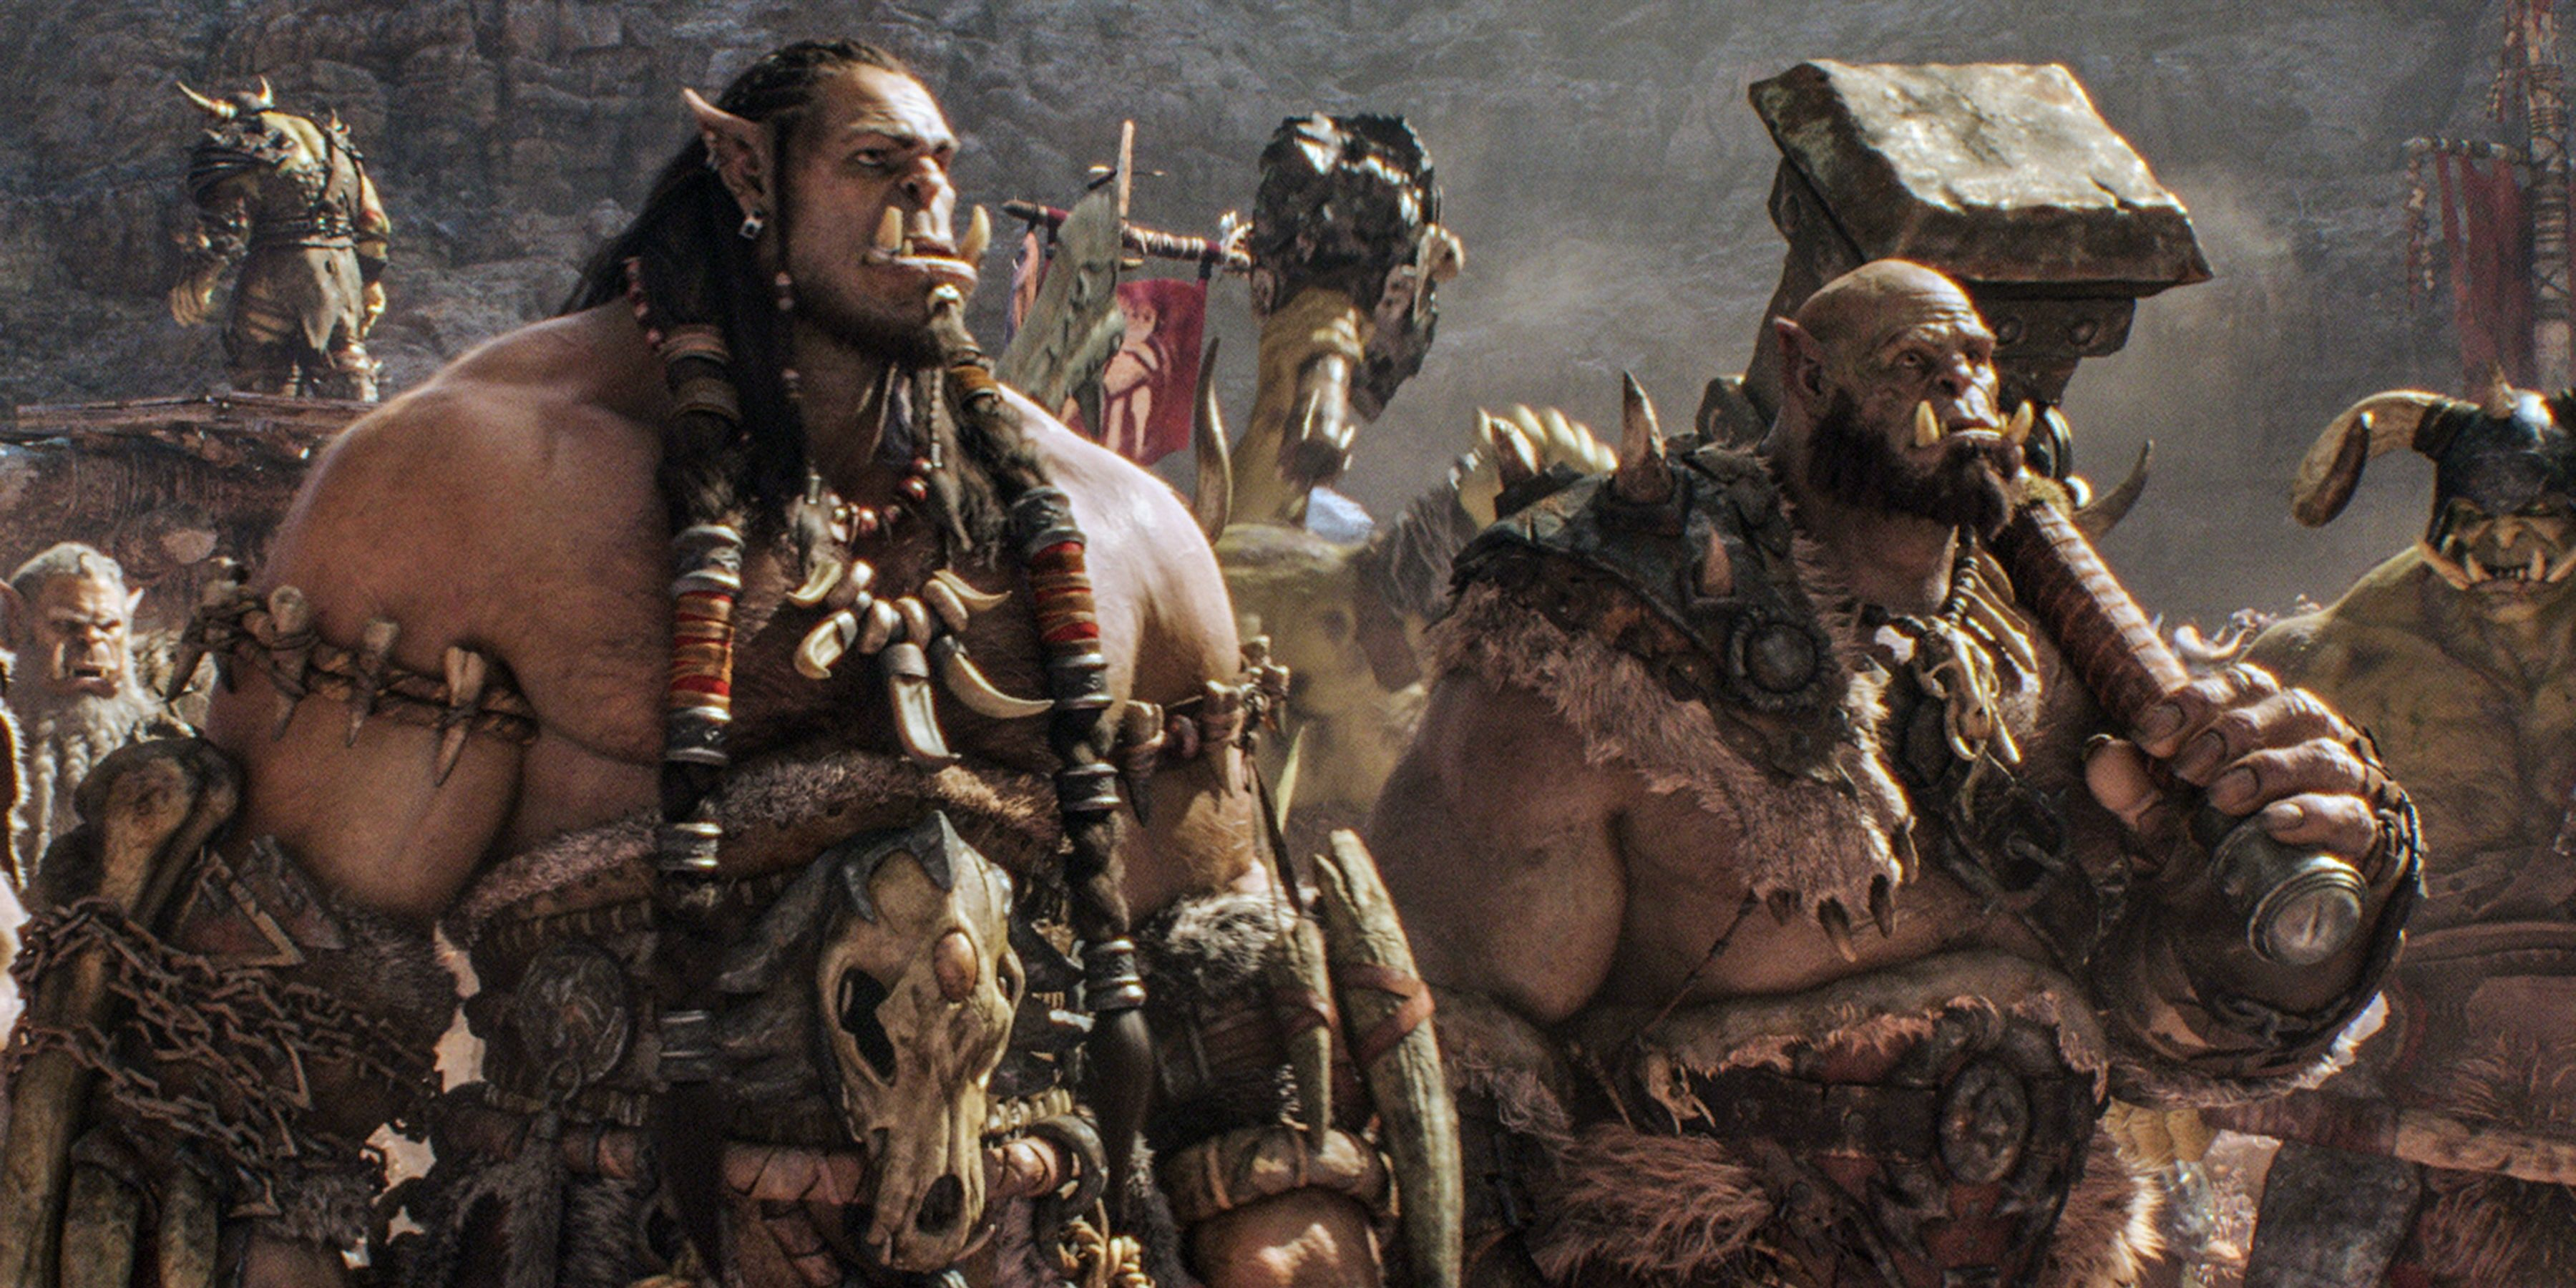 http://screenrant.com/wp-content/uploads/Warcraft-Movie-Durotan-and-Orgrim.jpg